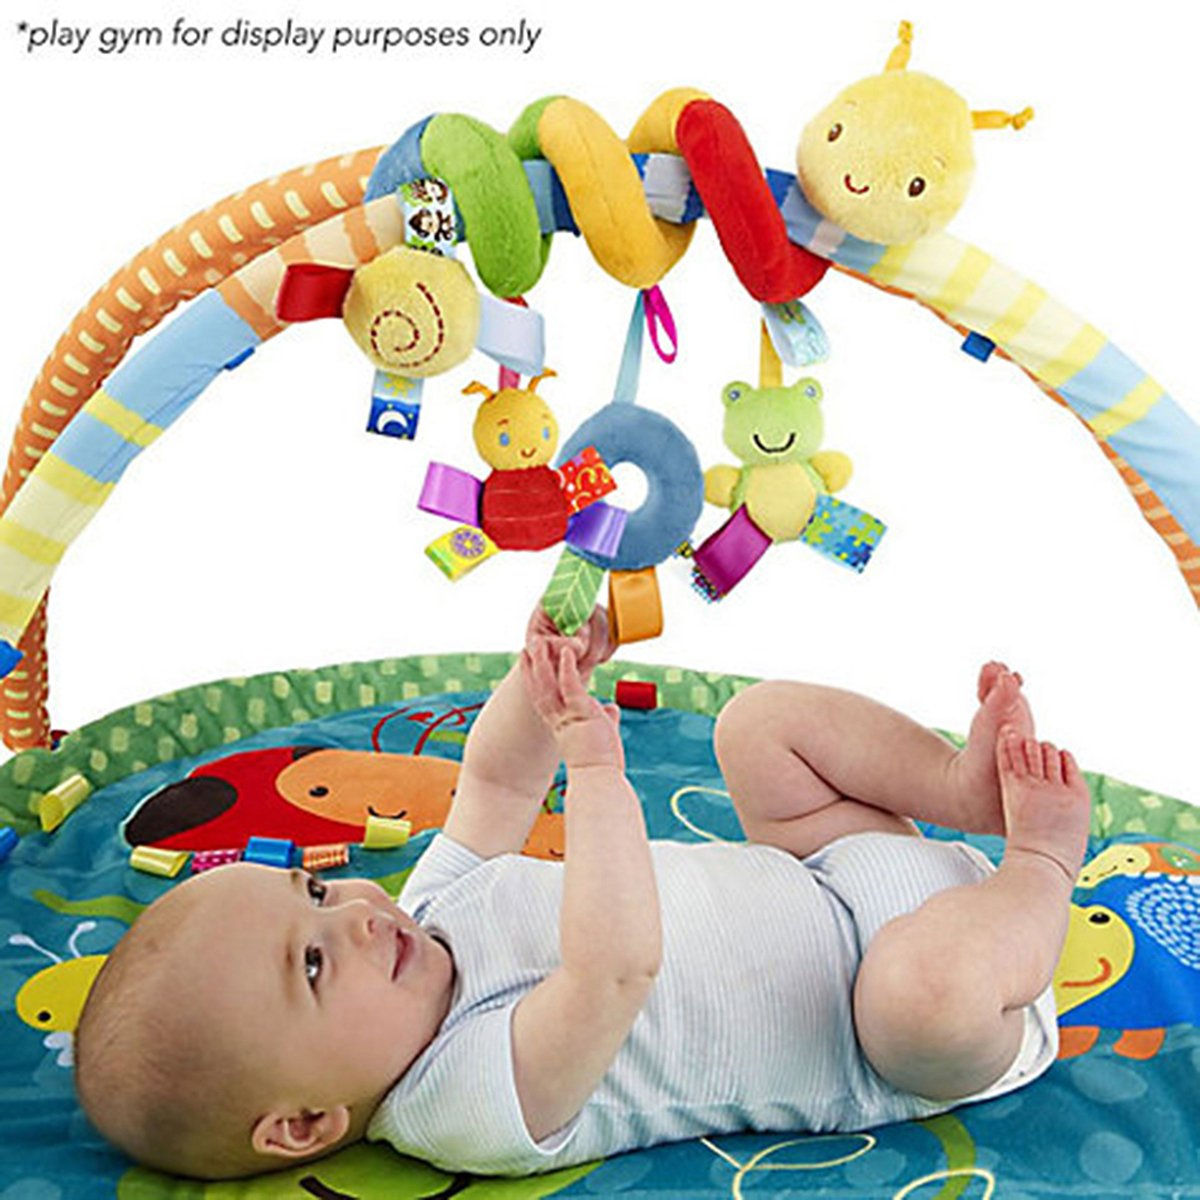 VEBE Multi-function Bedroom Decoration Infant Baby Activity Spiral Bed & Stroller Toy & Travel Activity Toy by VEBE (Image #3)